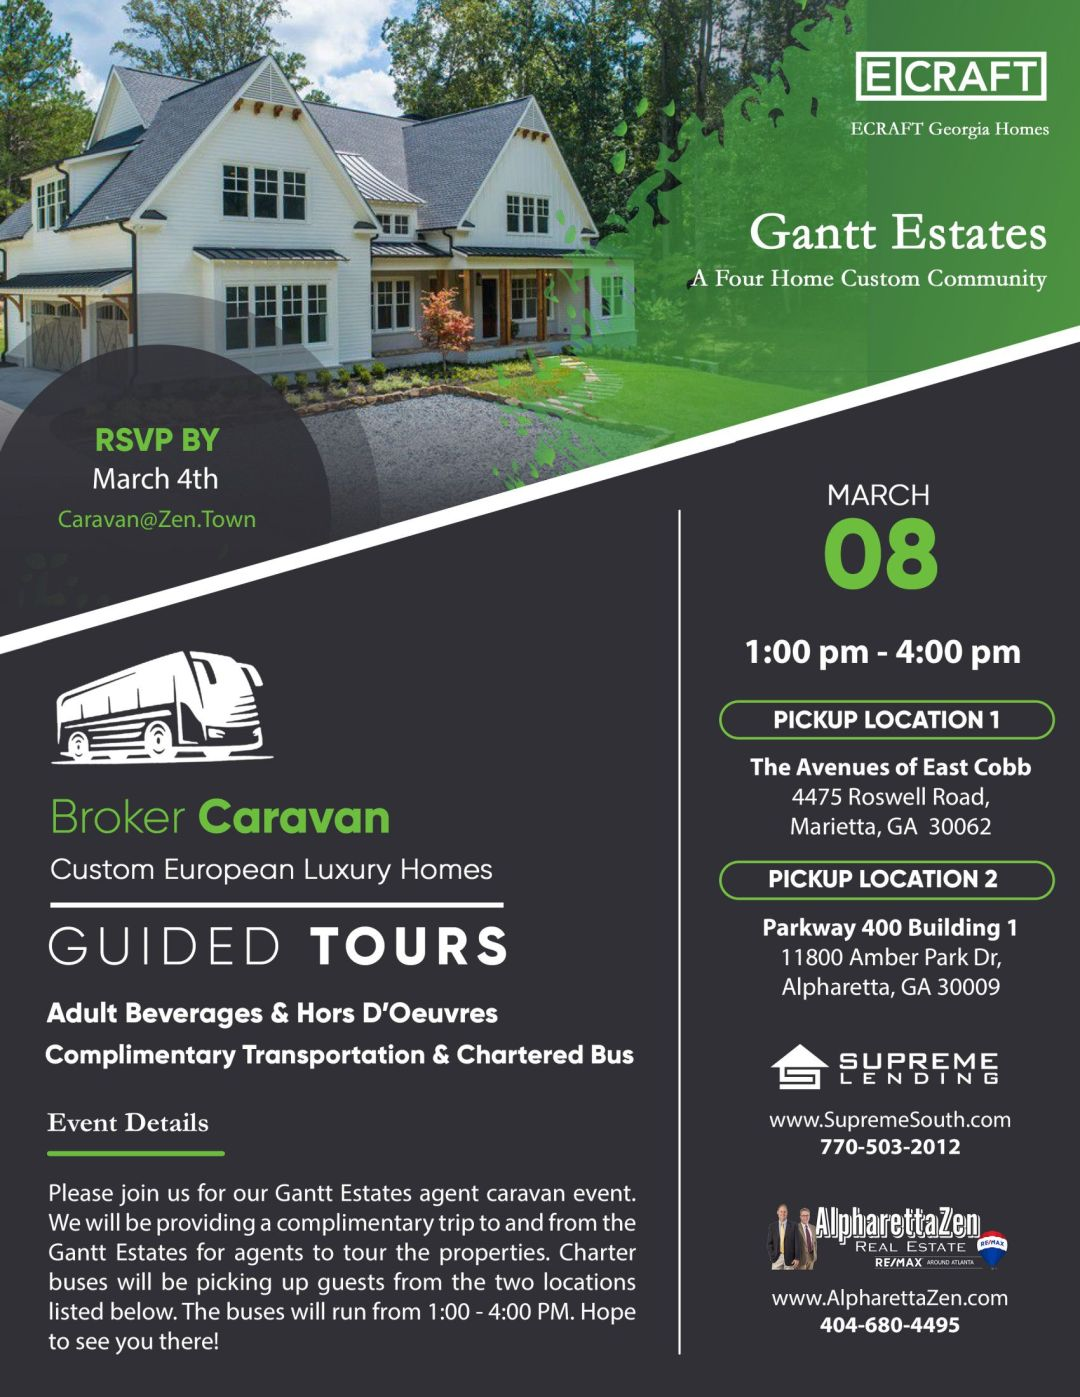 Ecraft Guided Tour of Gantt Estates